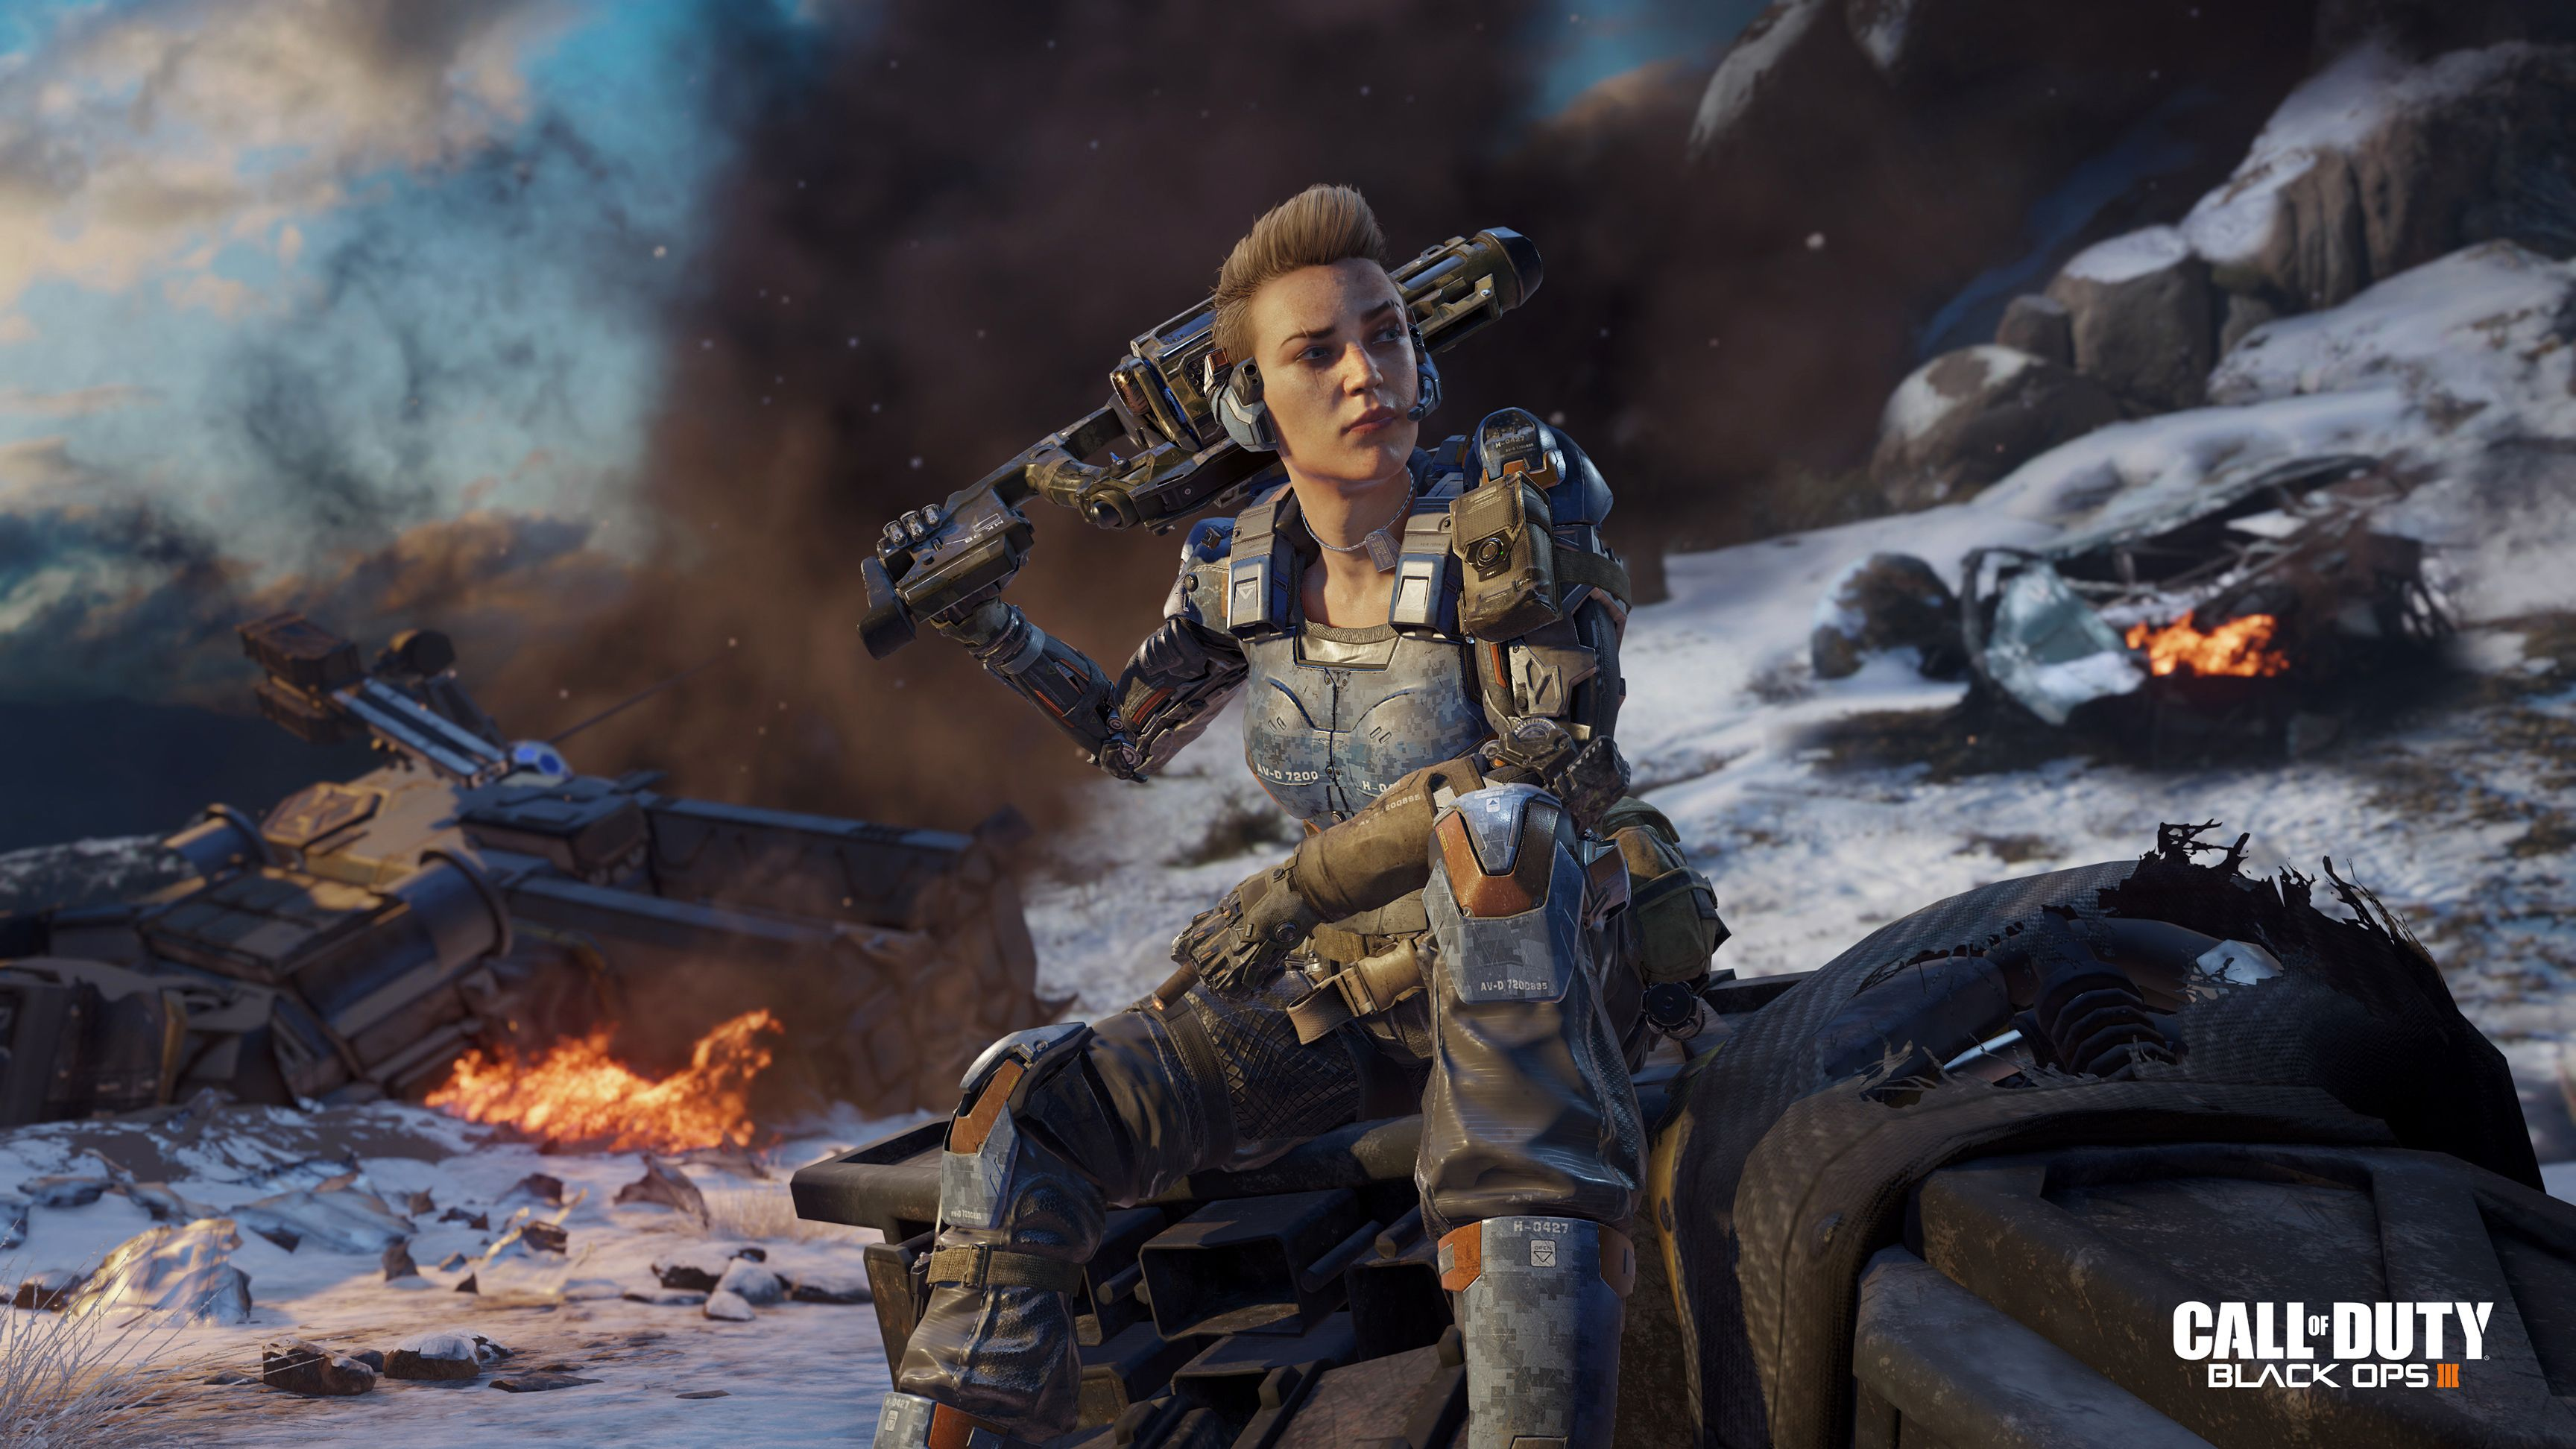 Black Ops 3 Allows You To Play The Campaign In Whatever Order You Like Call Of Duty Black Ops Iii Call Duty Black Ops Black Ops Iii